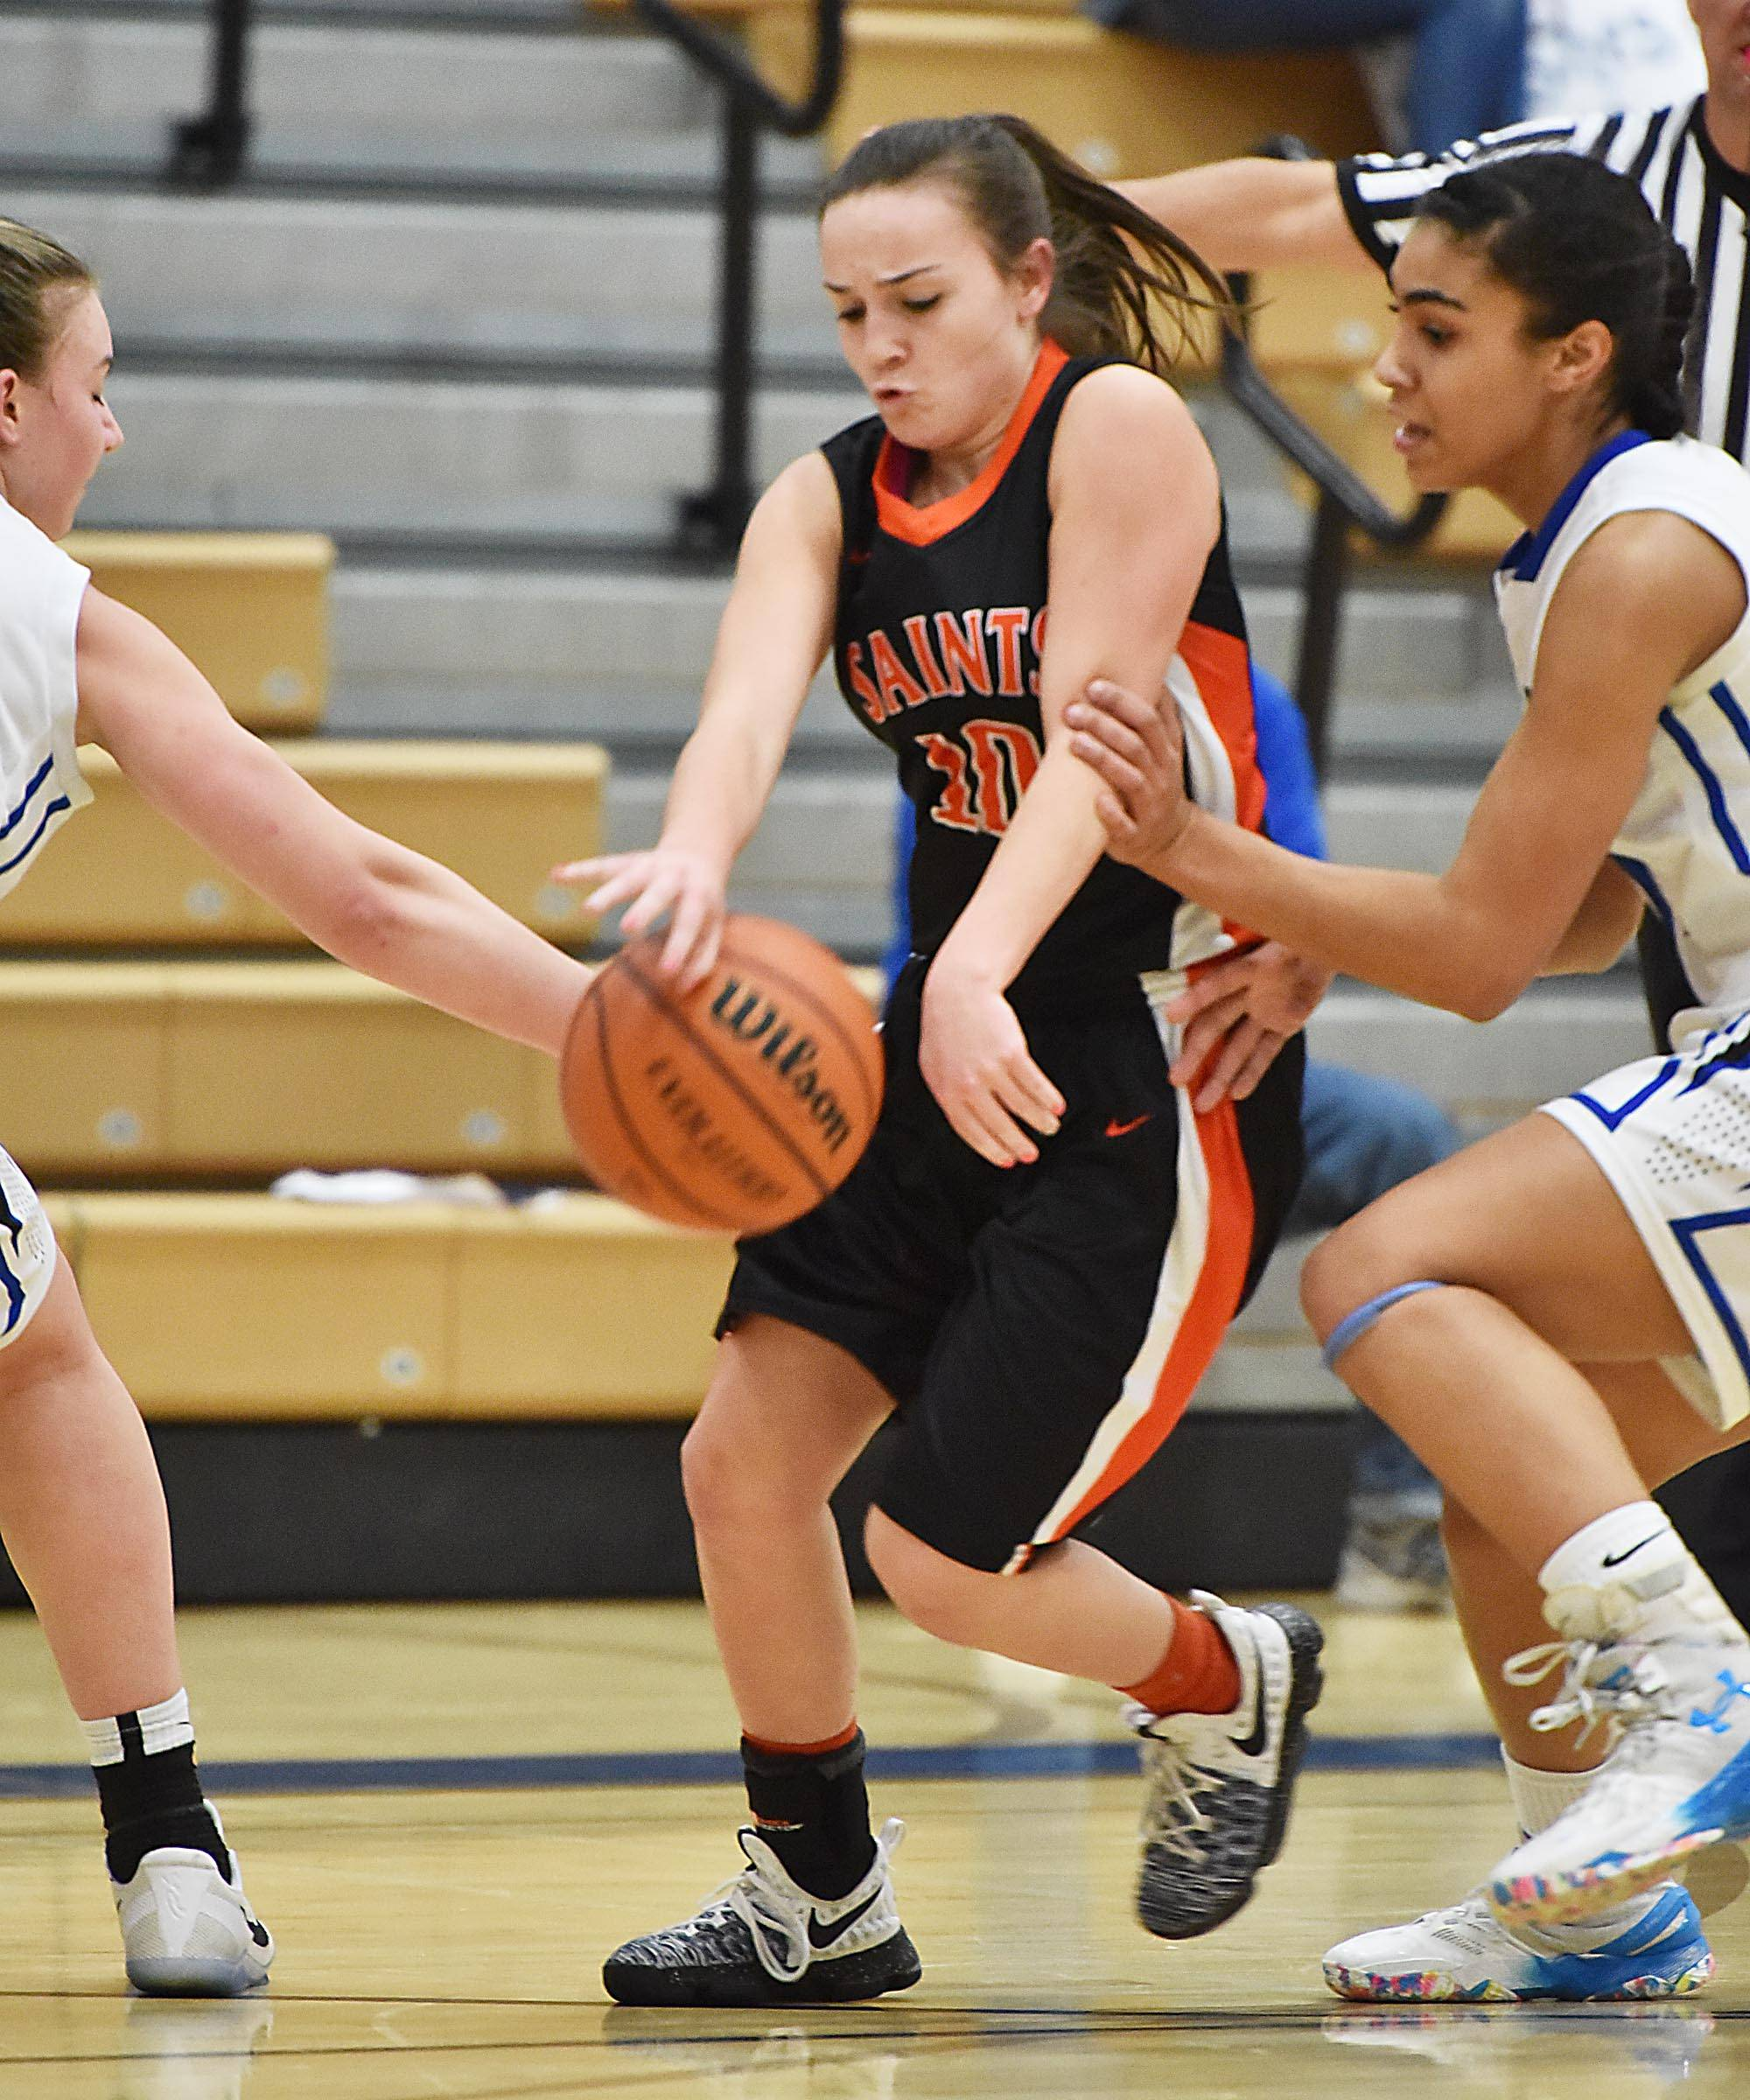 St. Charles East's Marissa Urso drives through the defense of St. Charles North's Elizabeth Olsem and Jazmyn Harmon Tuesday at North High School in St. Charles.